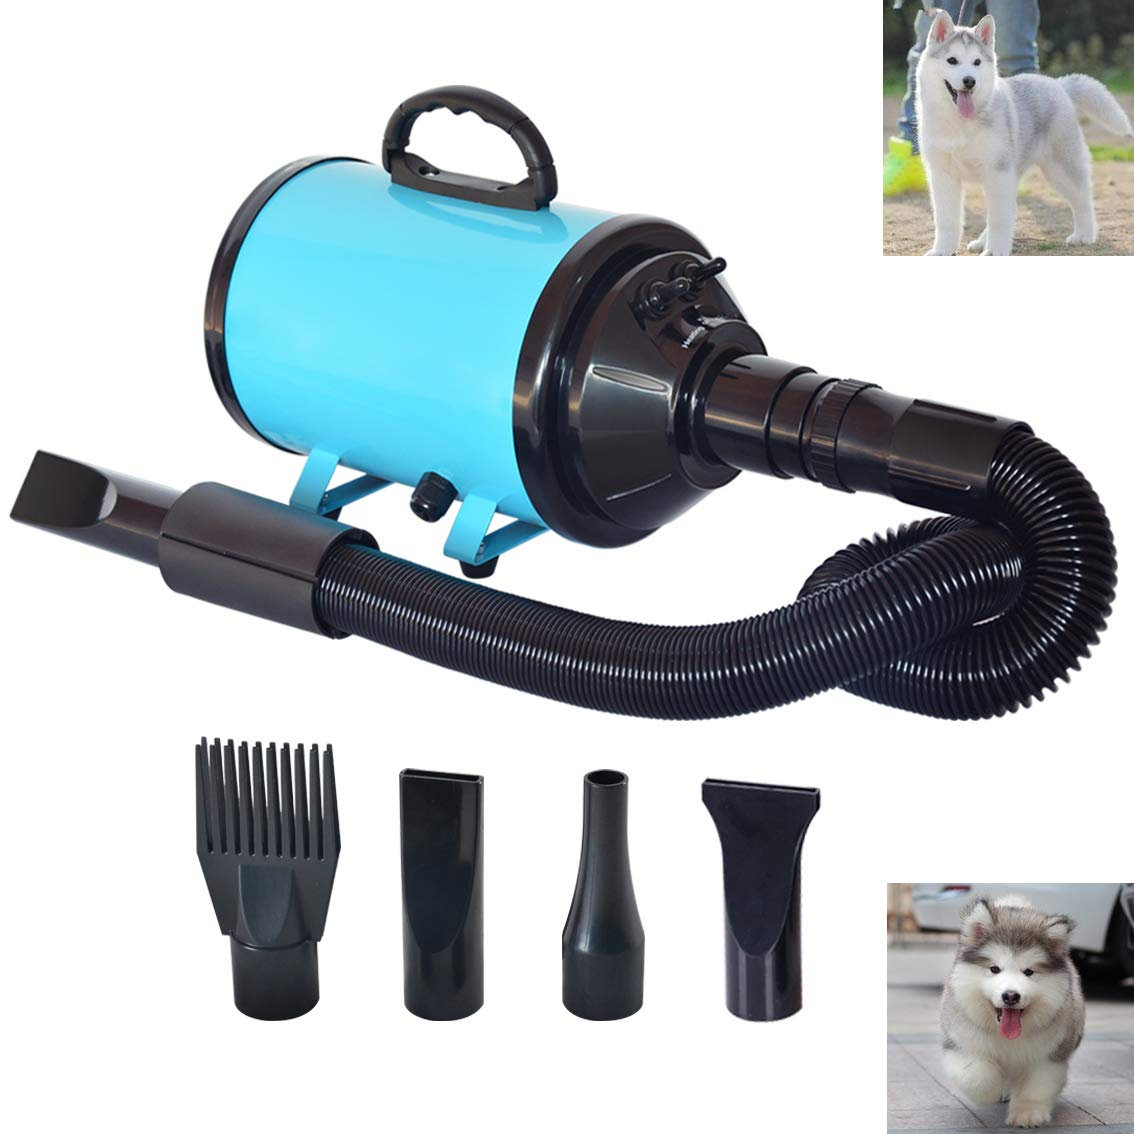 C&W Dog Dryer Noise Reduction Pet Dryer with Heater Dog Blower 3.2HP Adjustable Speed and Temperature Spring Hose and 4 Different Nozzles Blue Color